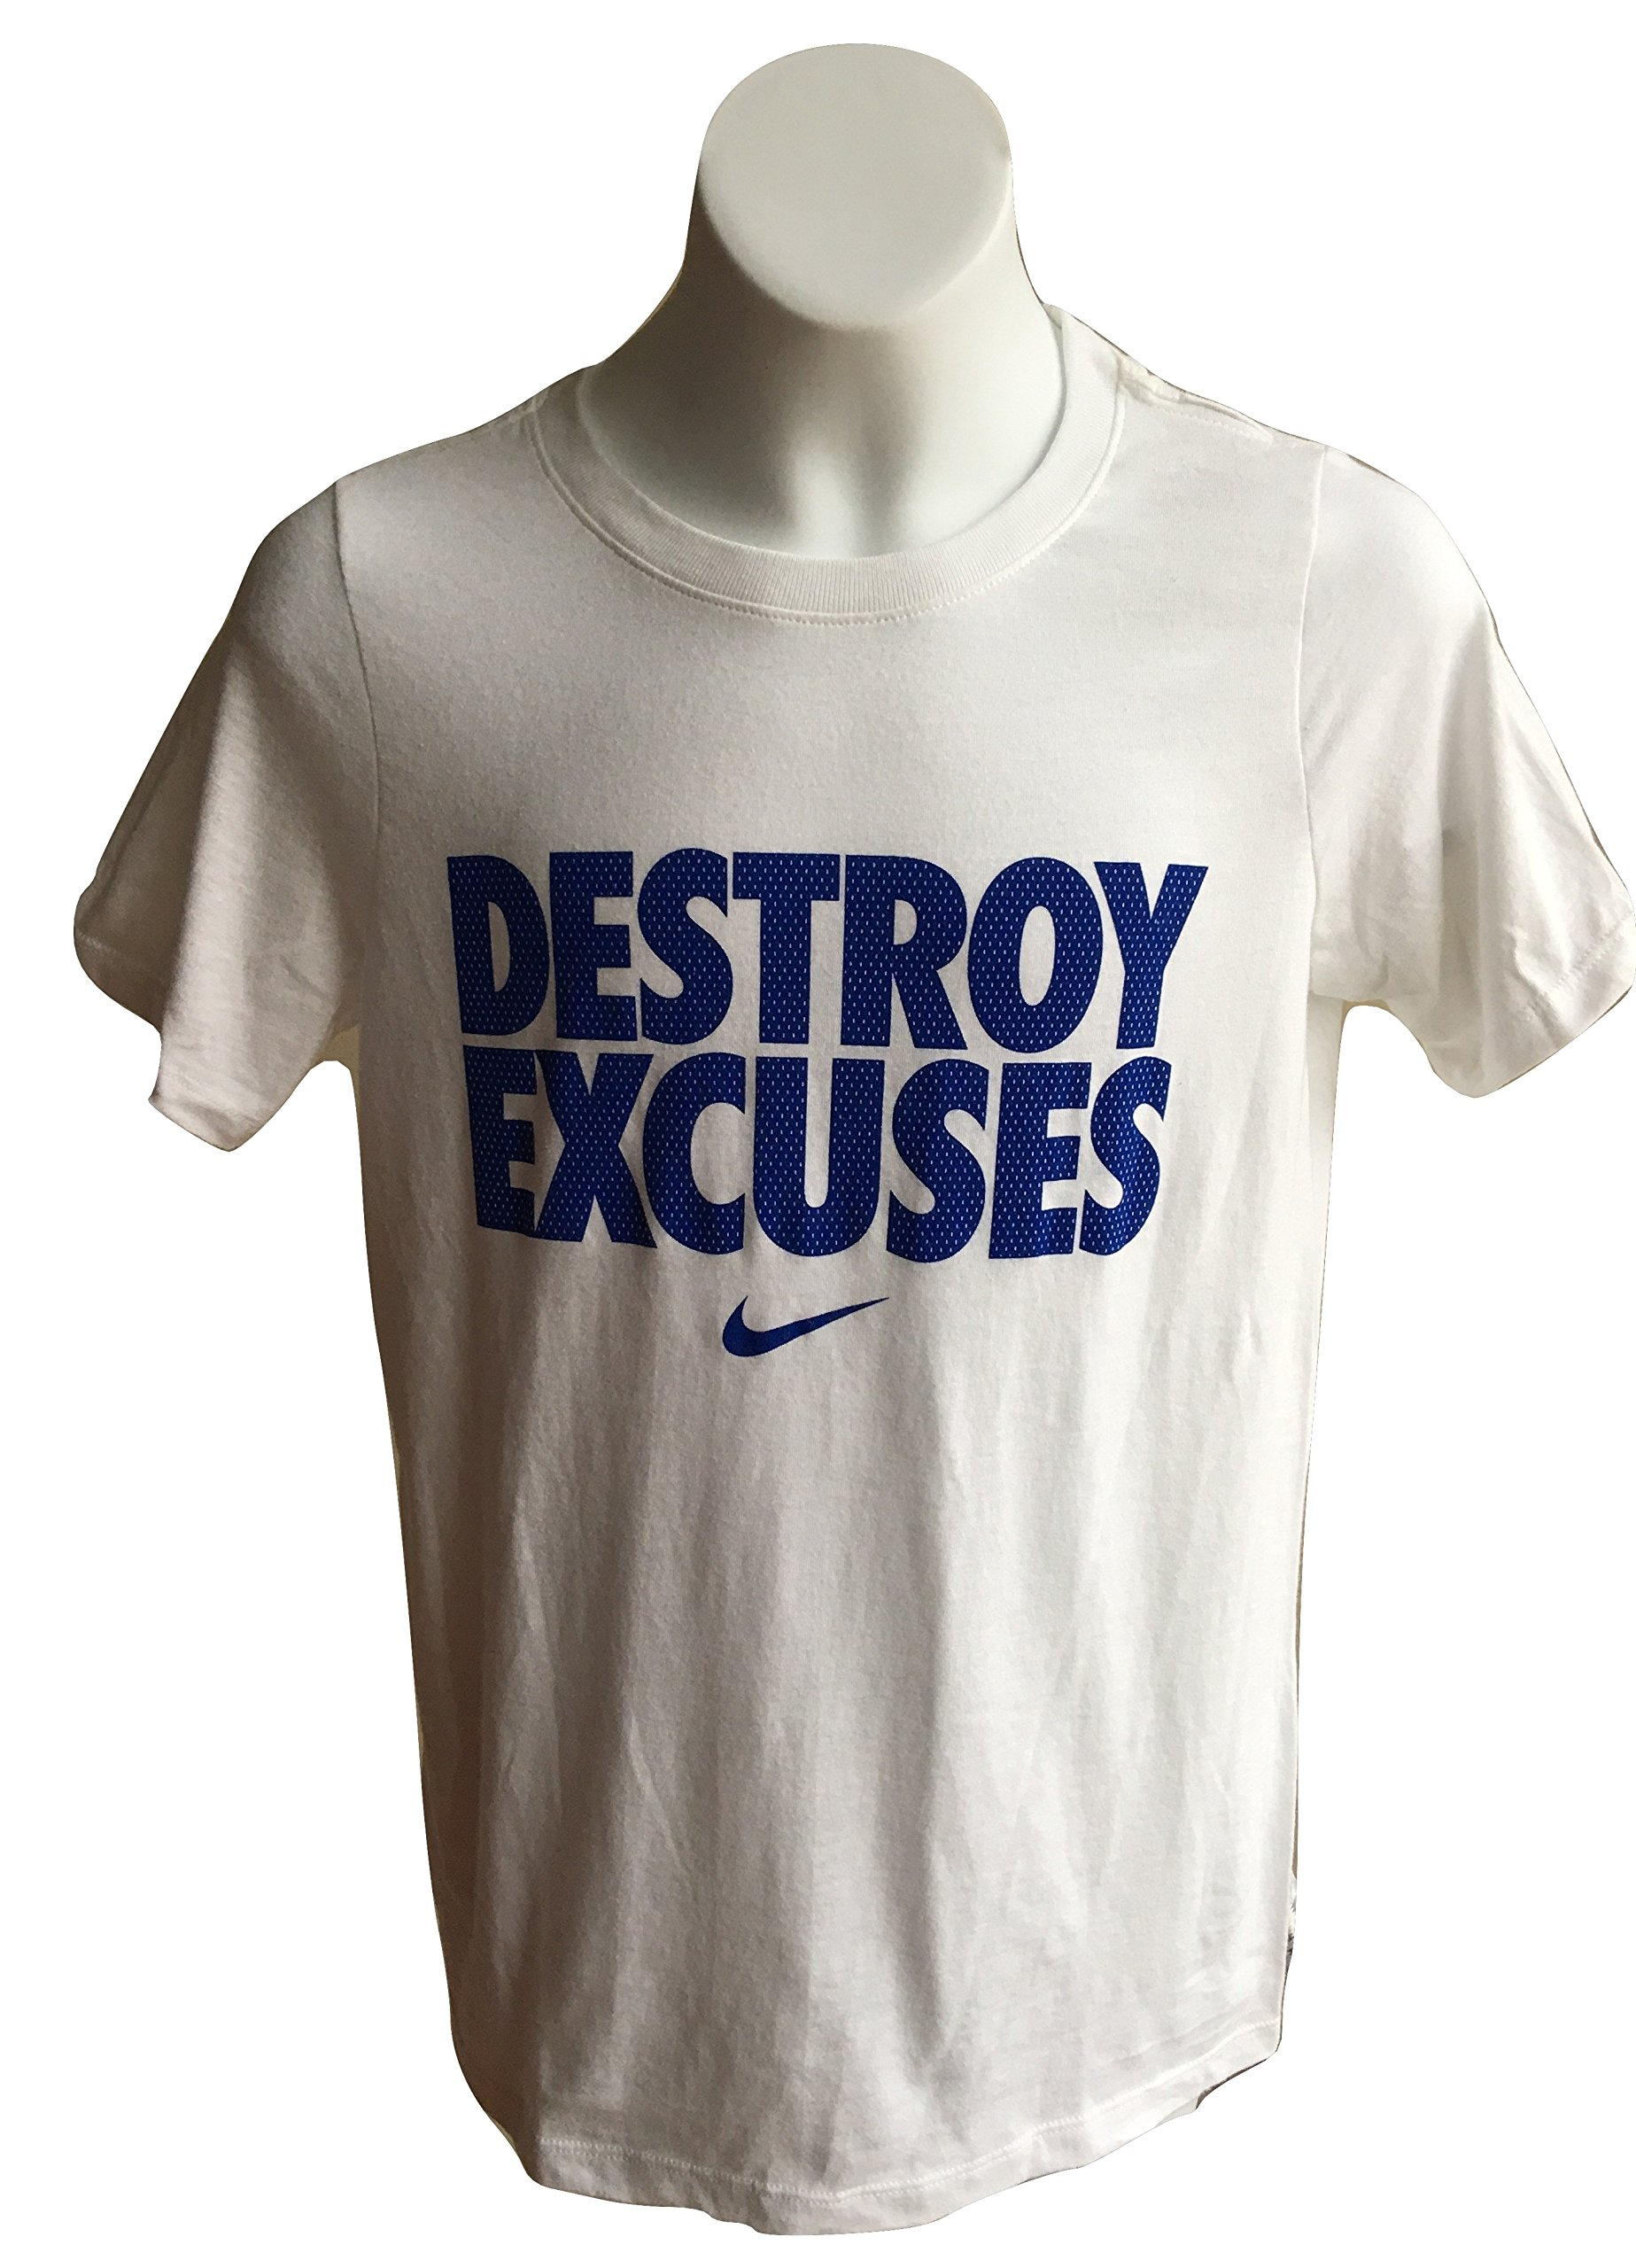 Nike Boy's Destroy Excuses Short Sleeve Graphic Print T-Shirt 916729 (S, White/Blue)